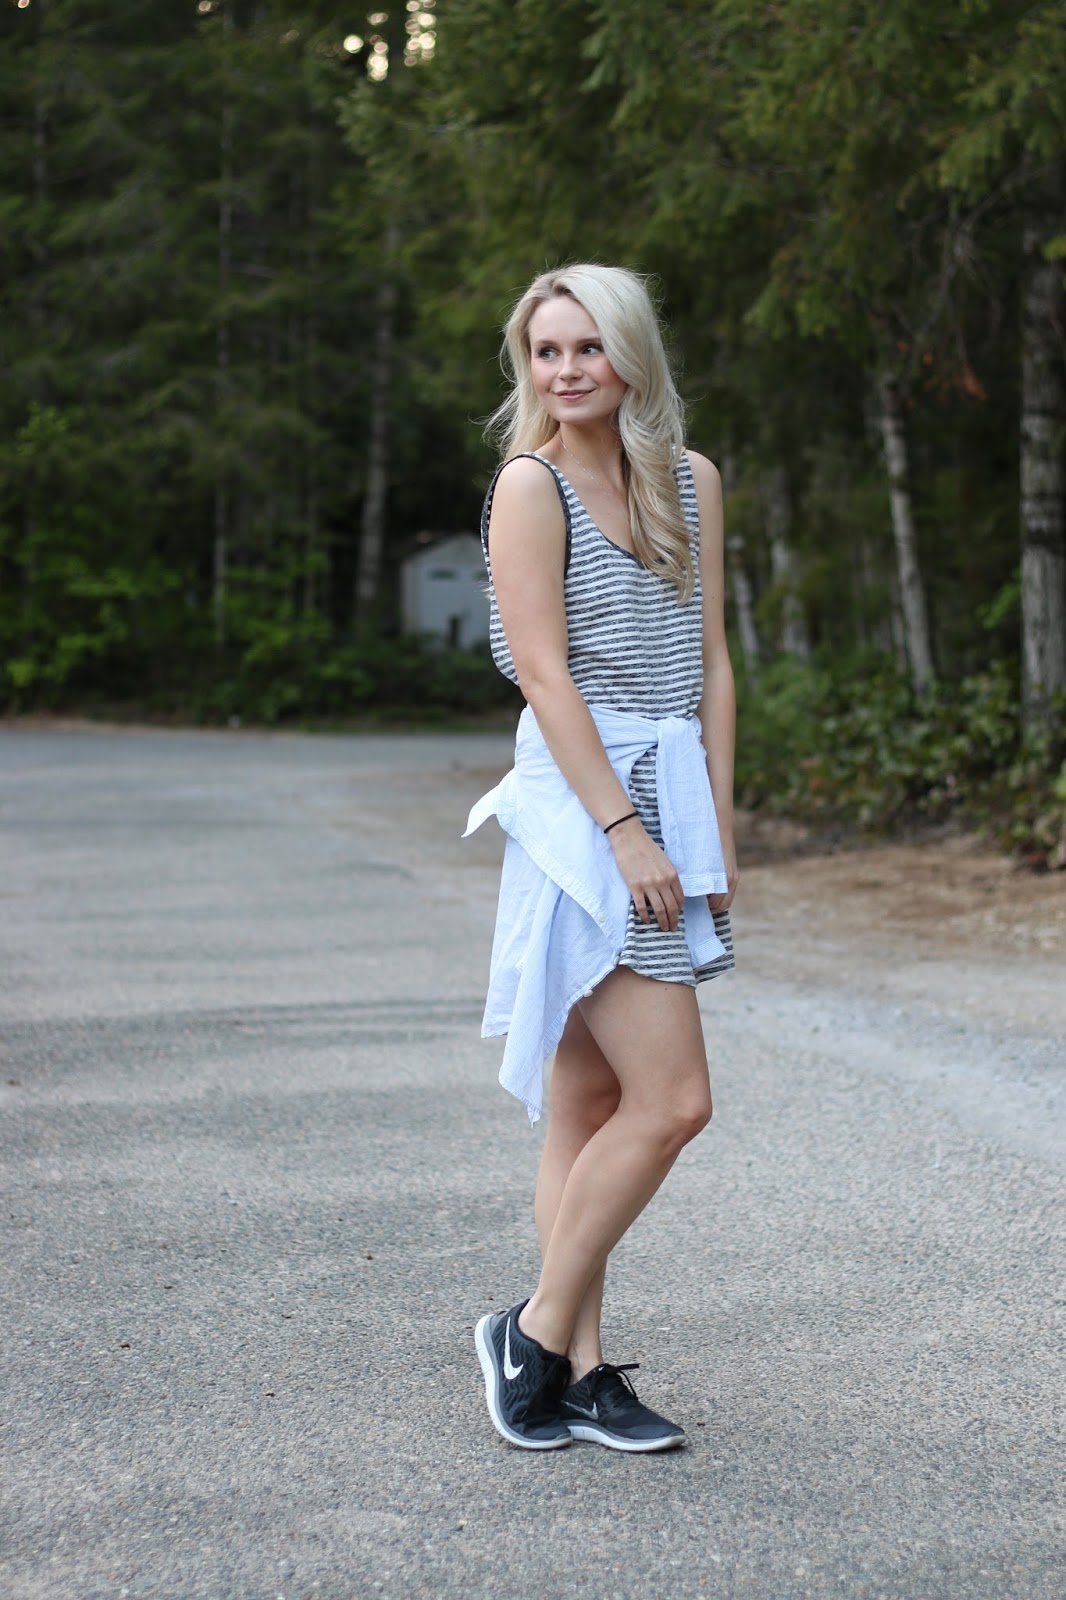 blogger happily demonstrates how to look cute while camping